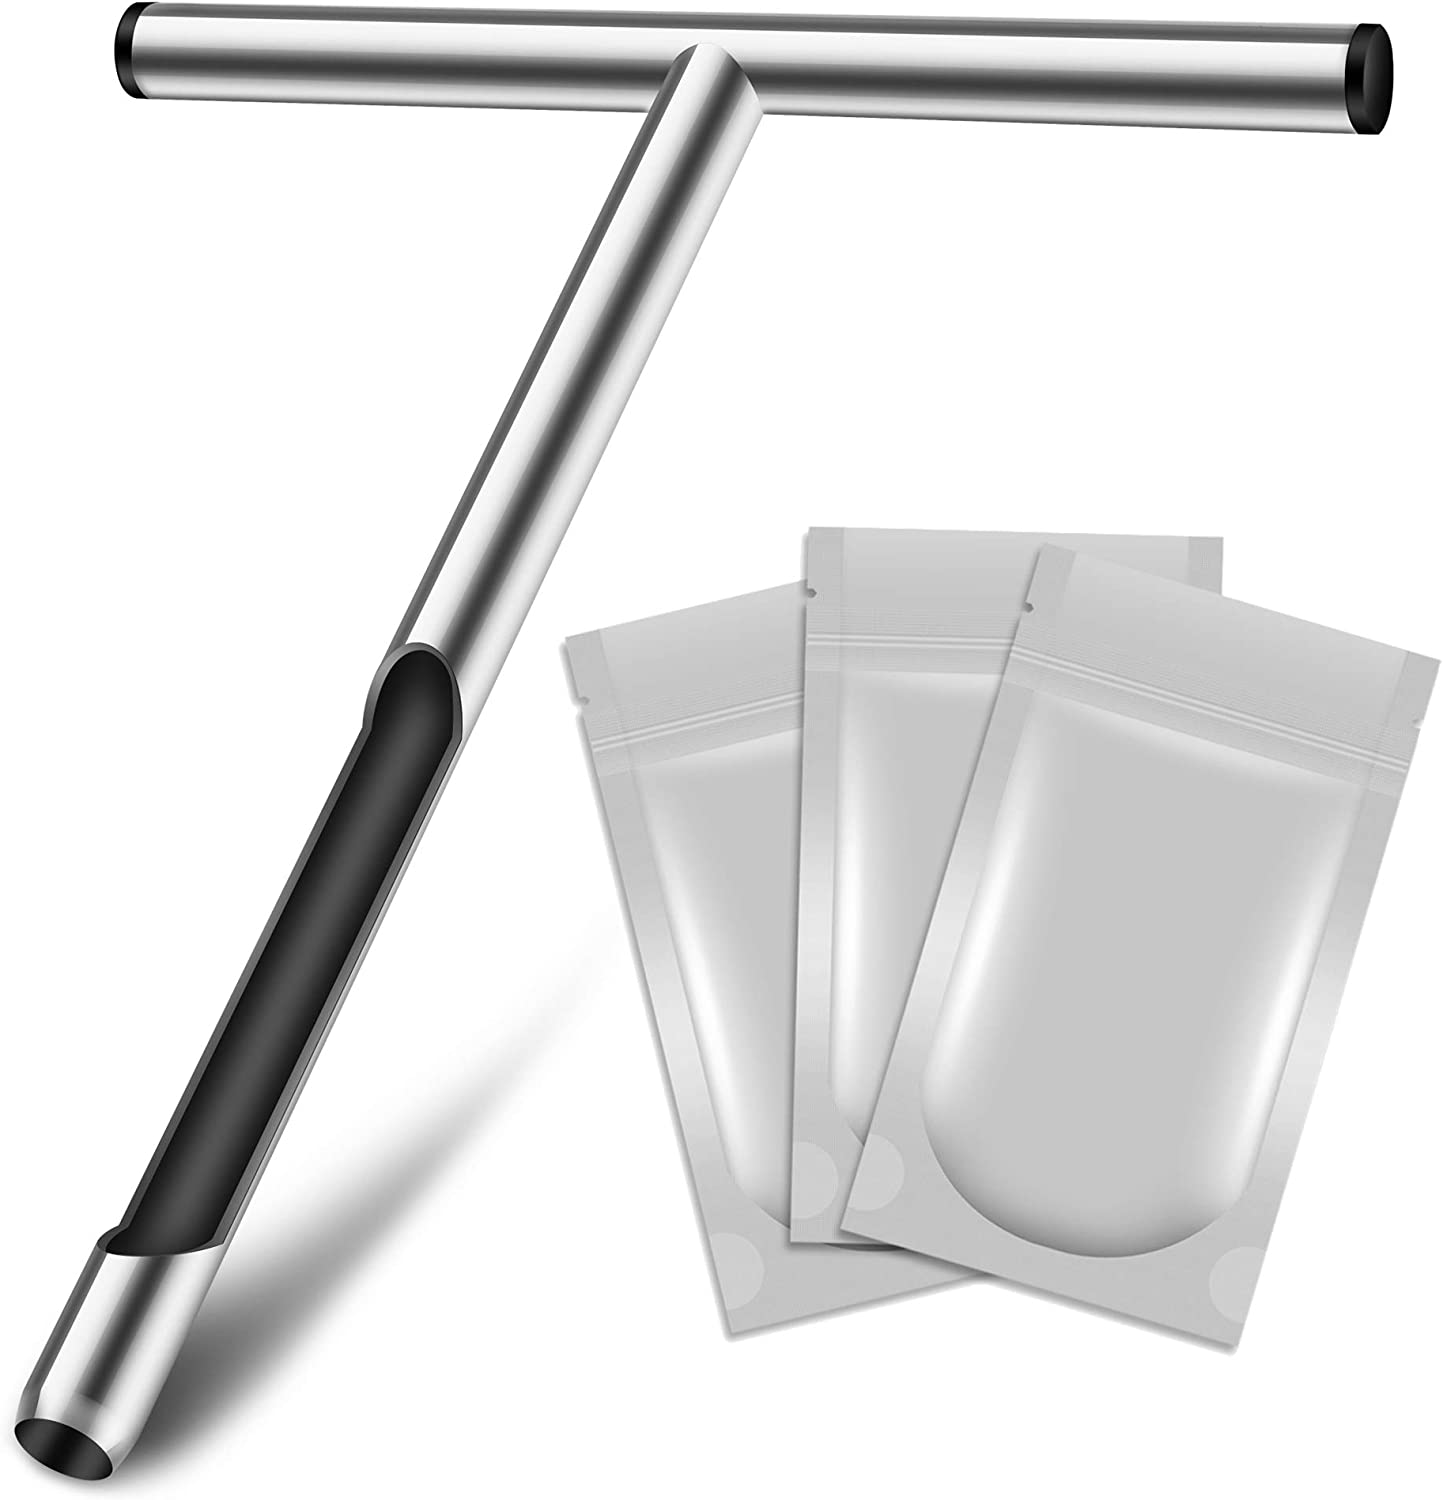 LOSTRONAUT Soil Sampler Probe 12 Inch - Tubular Contractor Grade Enforced T Handle - Stainless Steel with Core Sampling Area - Includes Soil Sample Kit Test Bags - for Garden Lawn Farm or Golf Course